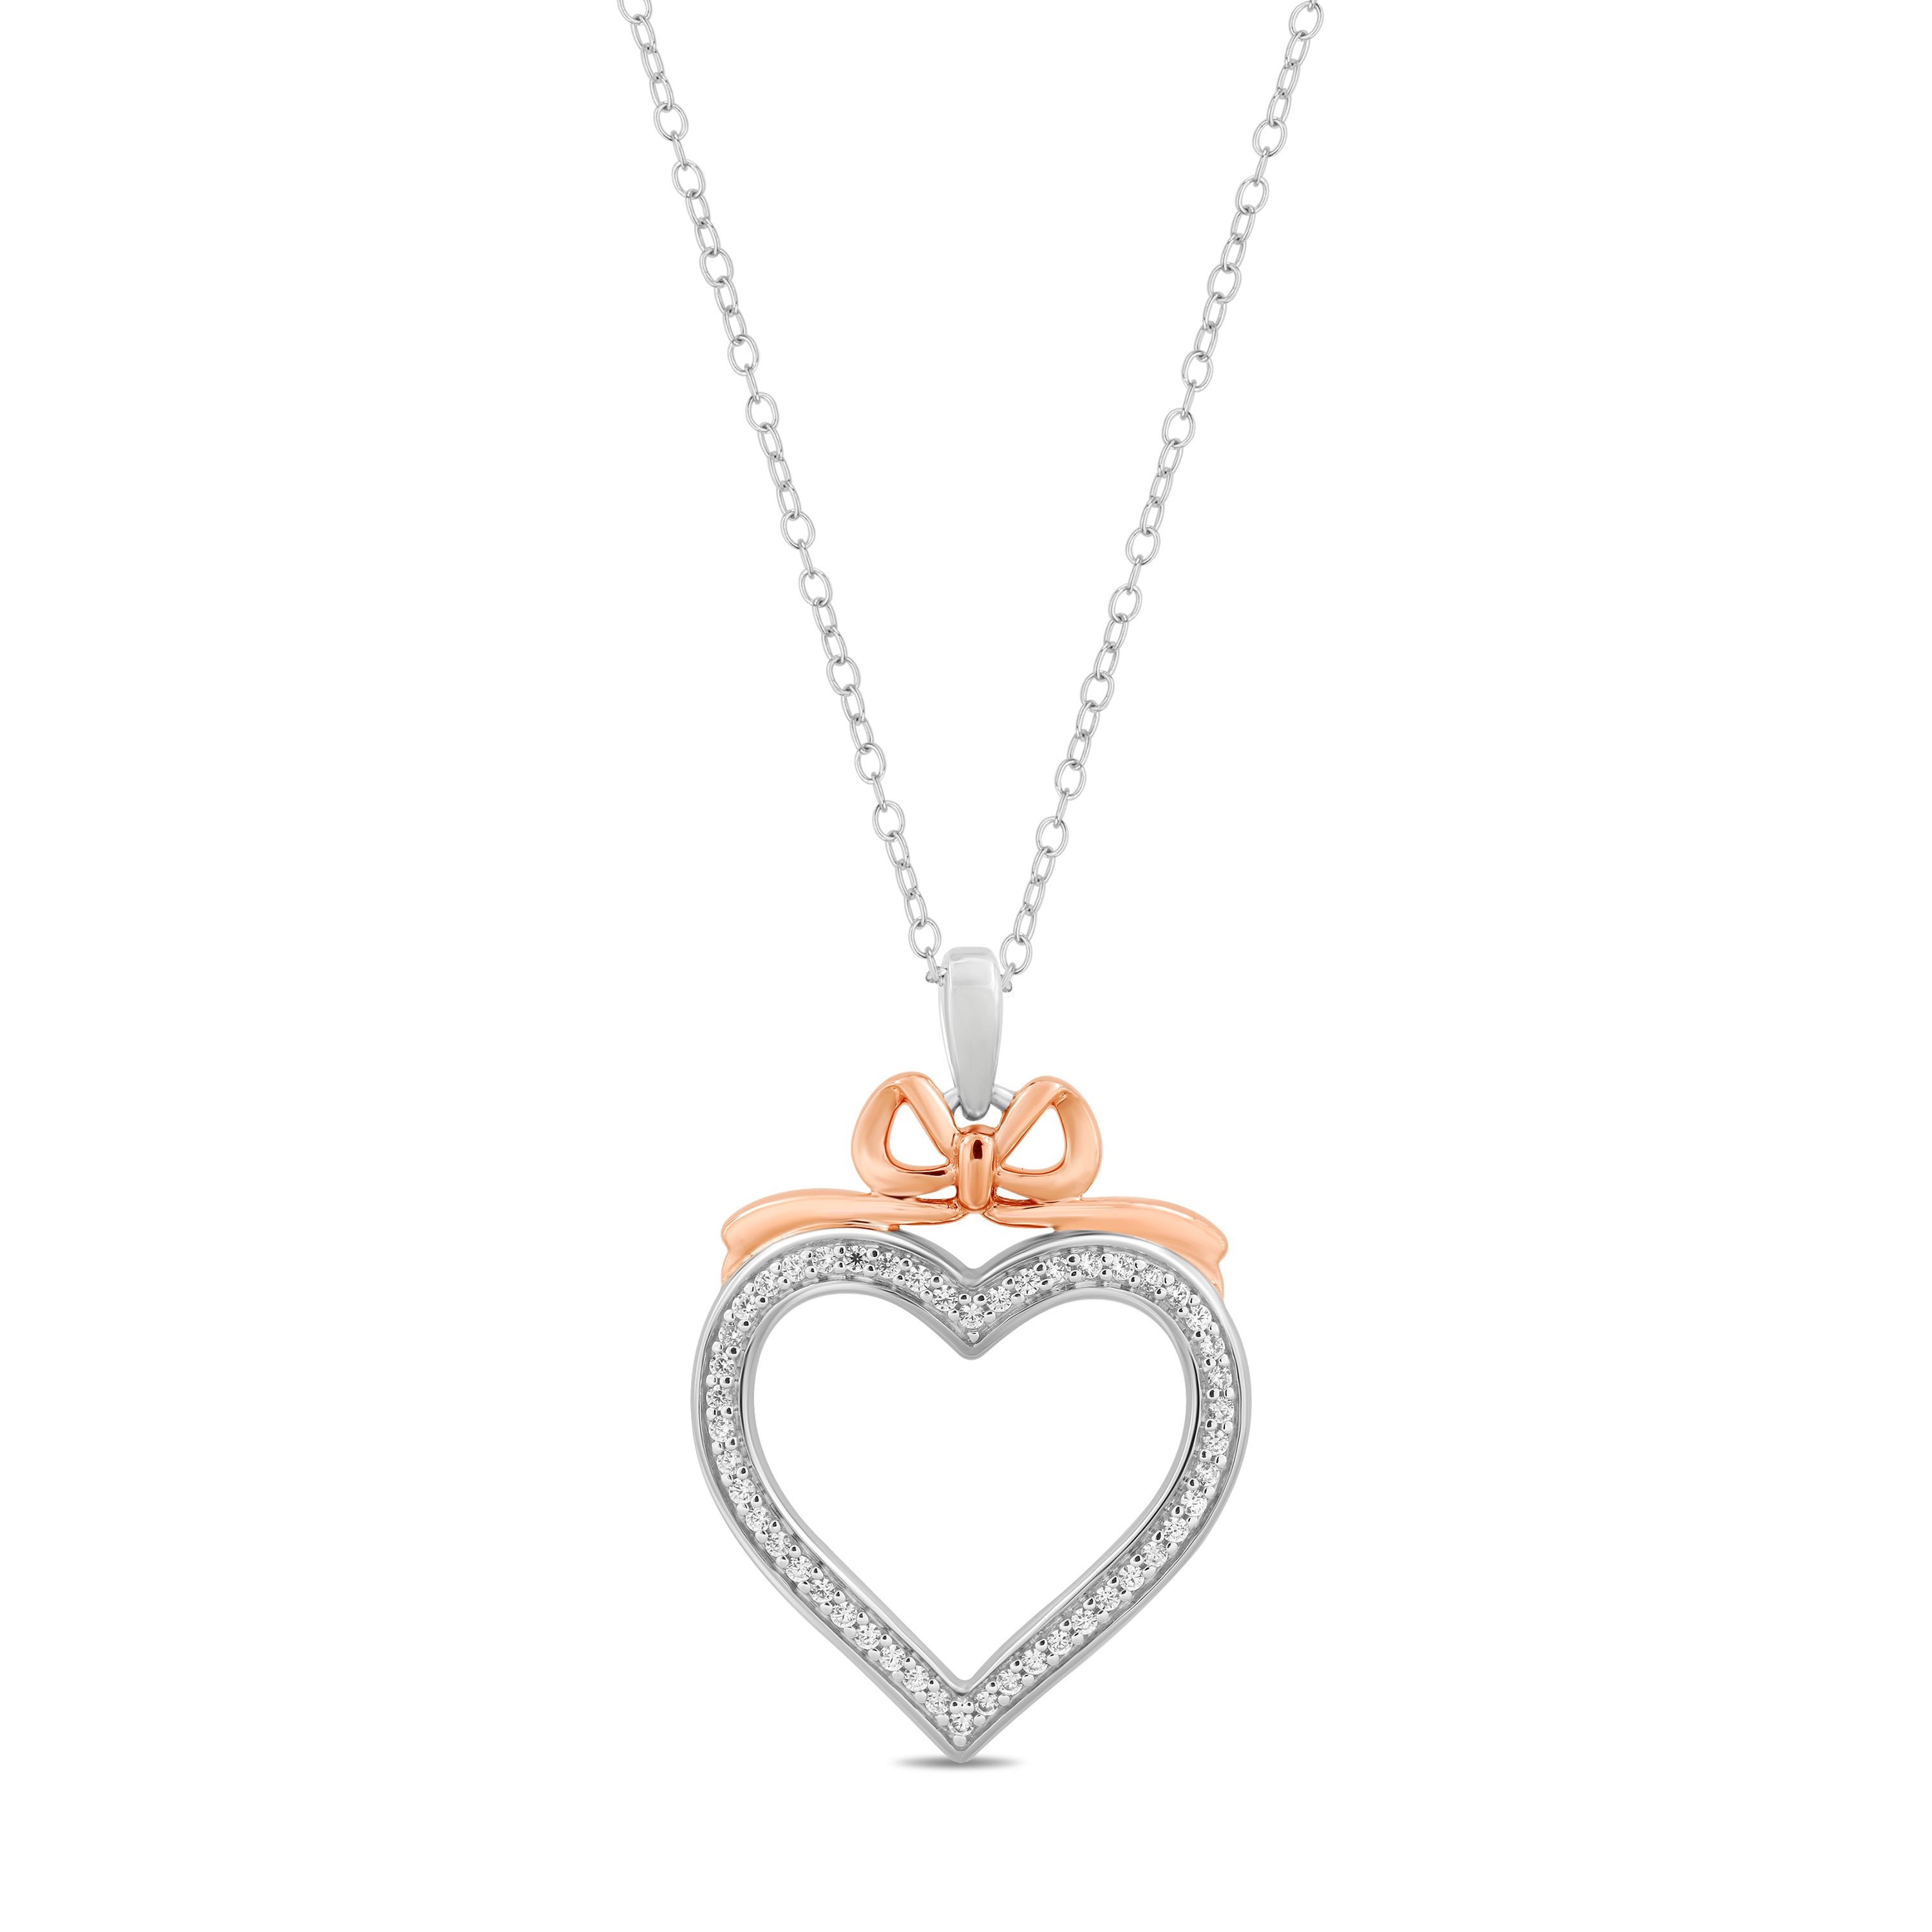 enchanted_disney-snow-white_bow_pendant-rose_gold_over_sterling_silver_1/5CTTW_1